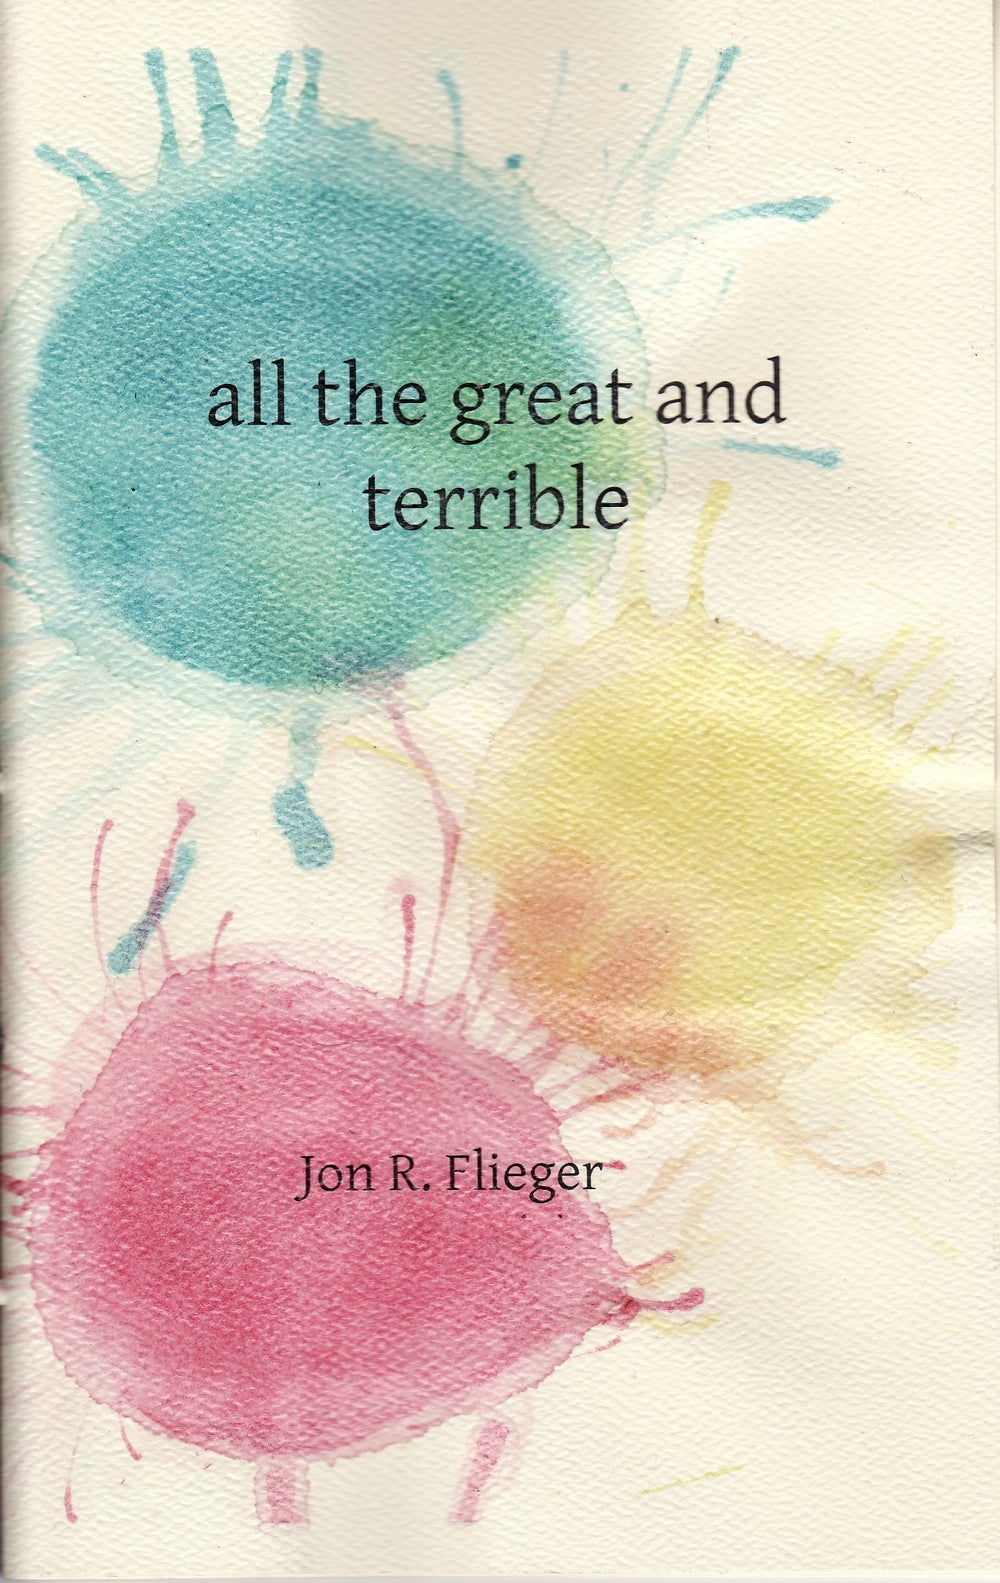 """Image of  """"all the great and terrible"""" by Jon R. Flieger"""